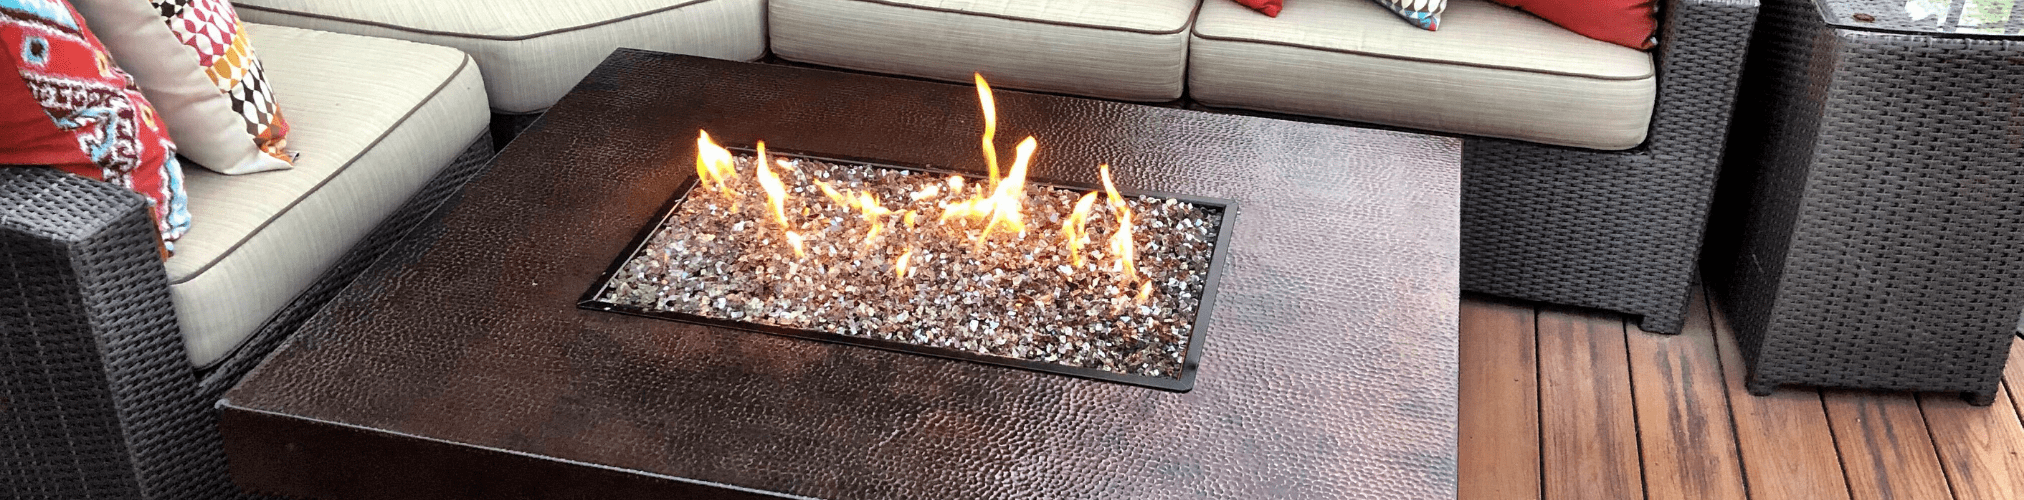 Copper Fire Pits - FireTables